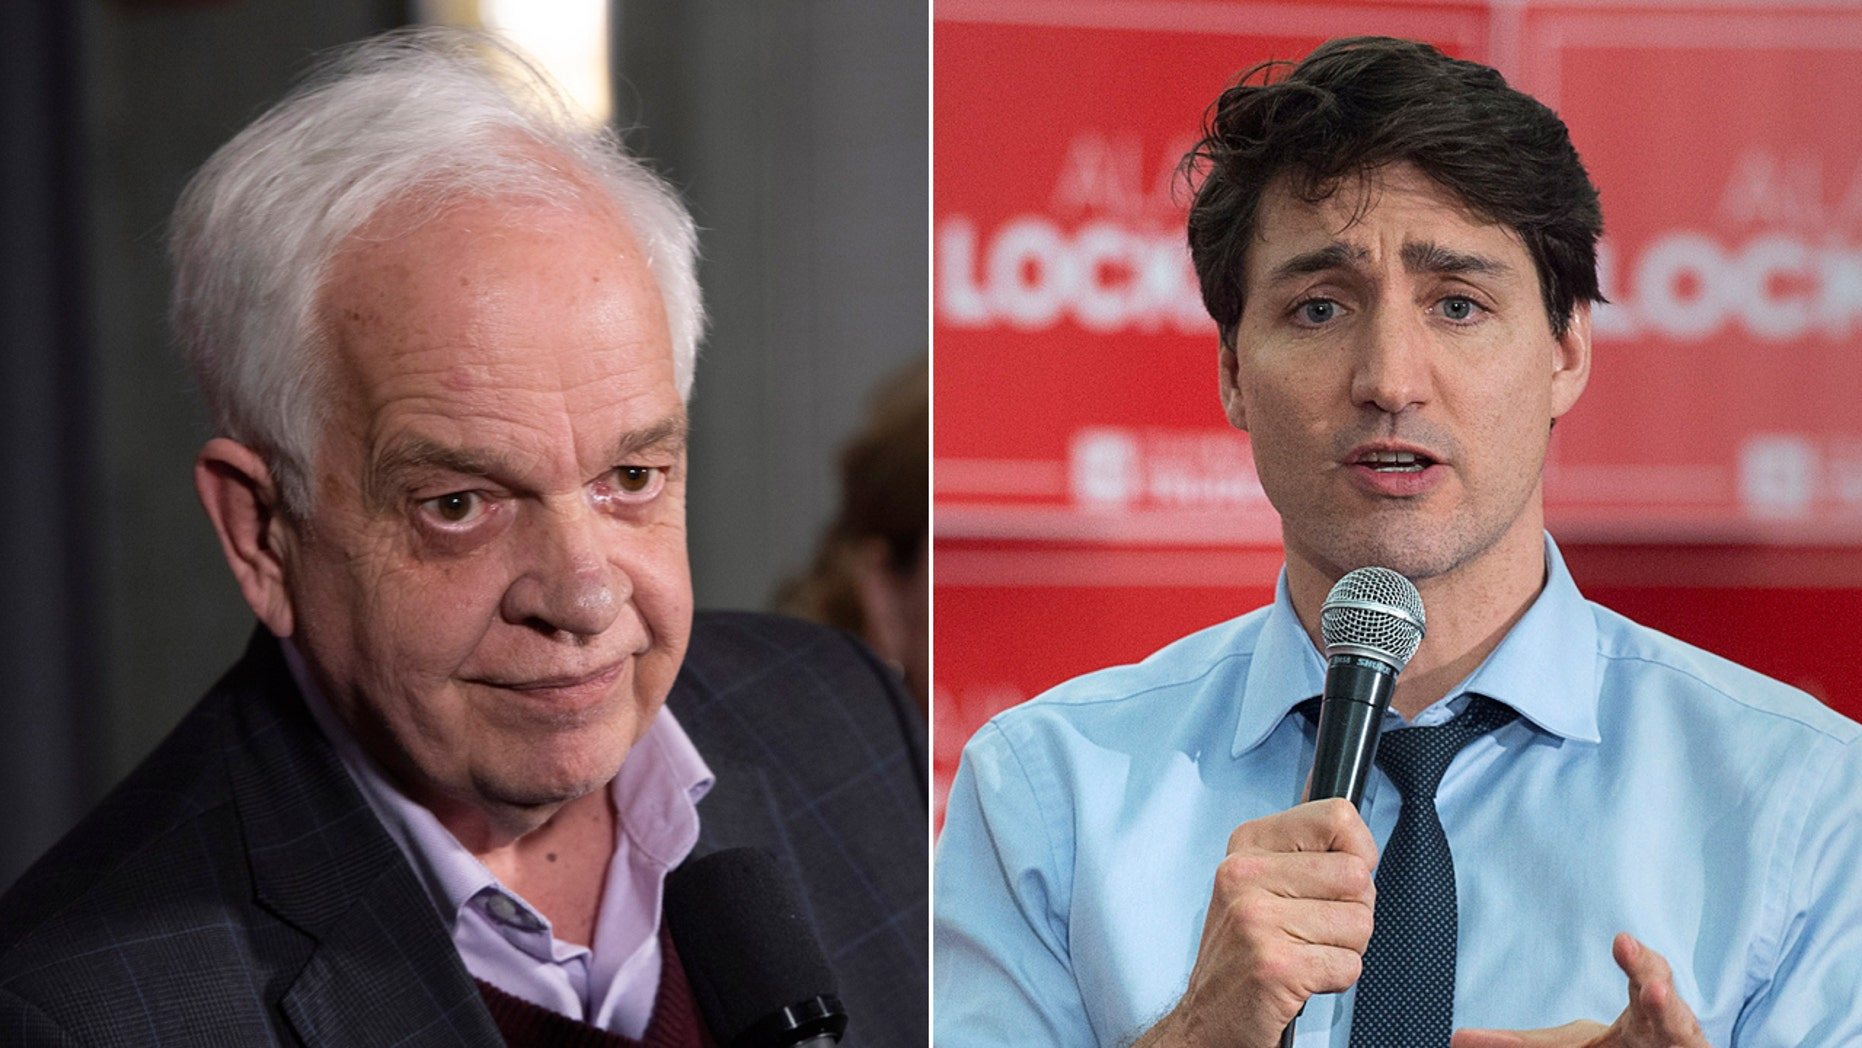 """Canadian Prime Minister Justin Trudeauasked for McCallum's resignation Friday night after the former ambassador to China told The Toronto Star earlier that day that it would be """"great"""" if the U.S. dropped its extradition request for Huawei executive Meng Wanzhou."""